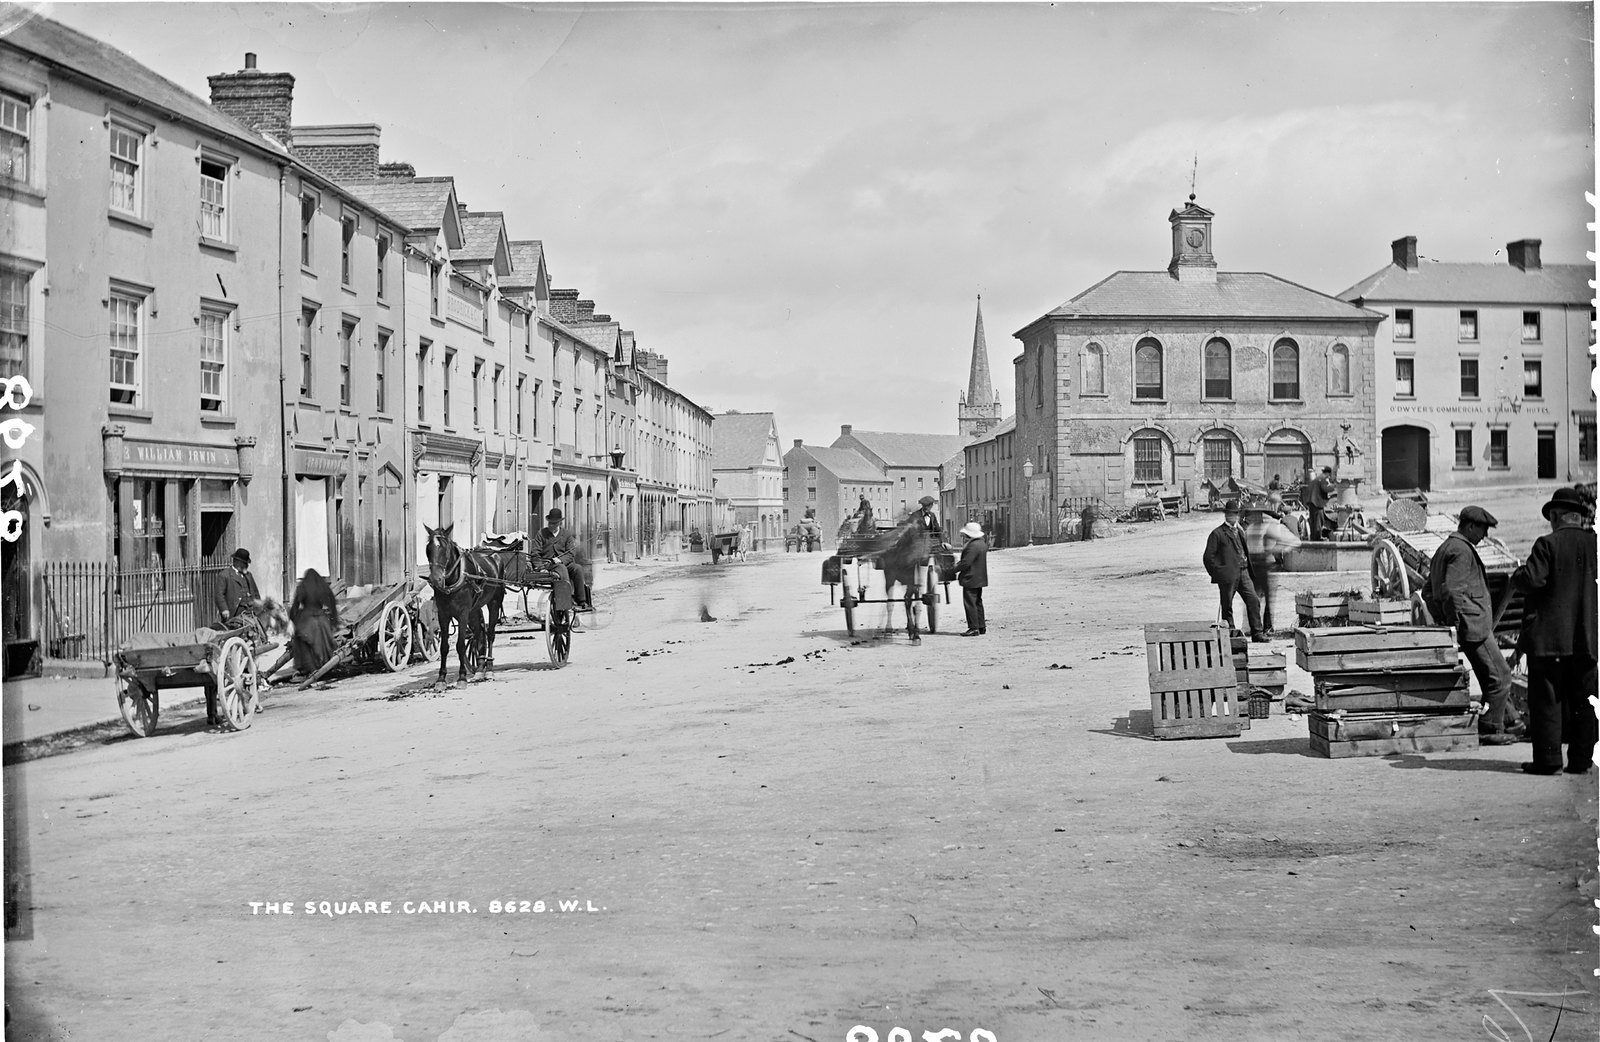 Old photo of the Square, Cahir, Co. Tipperary, Ireland